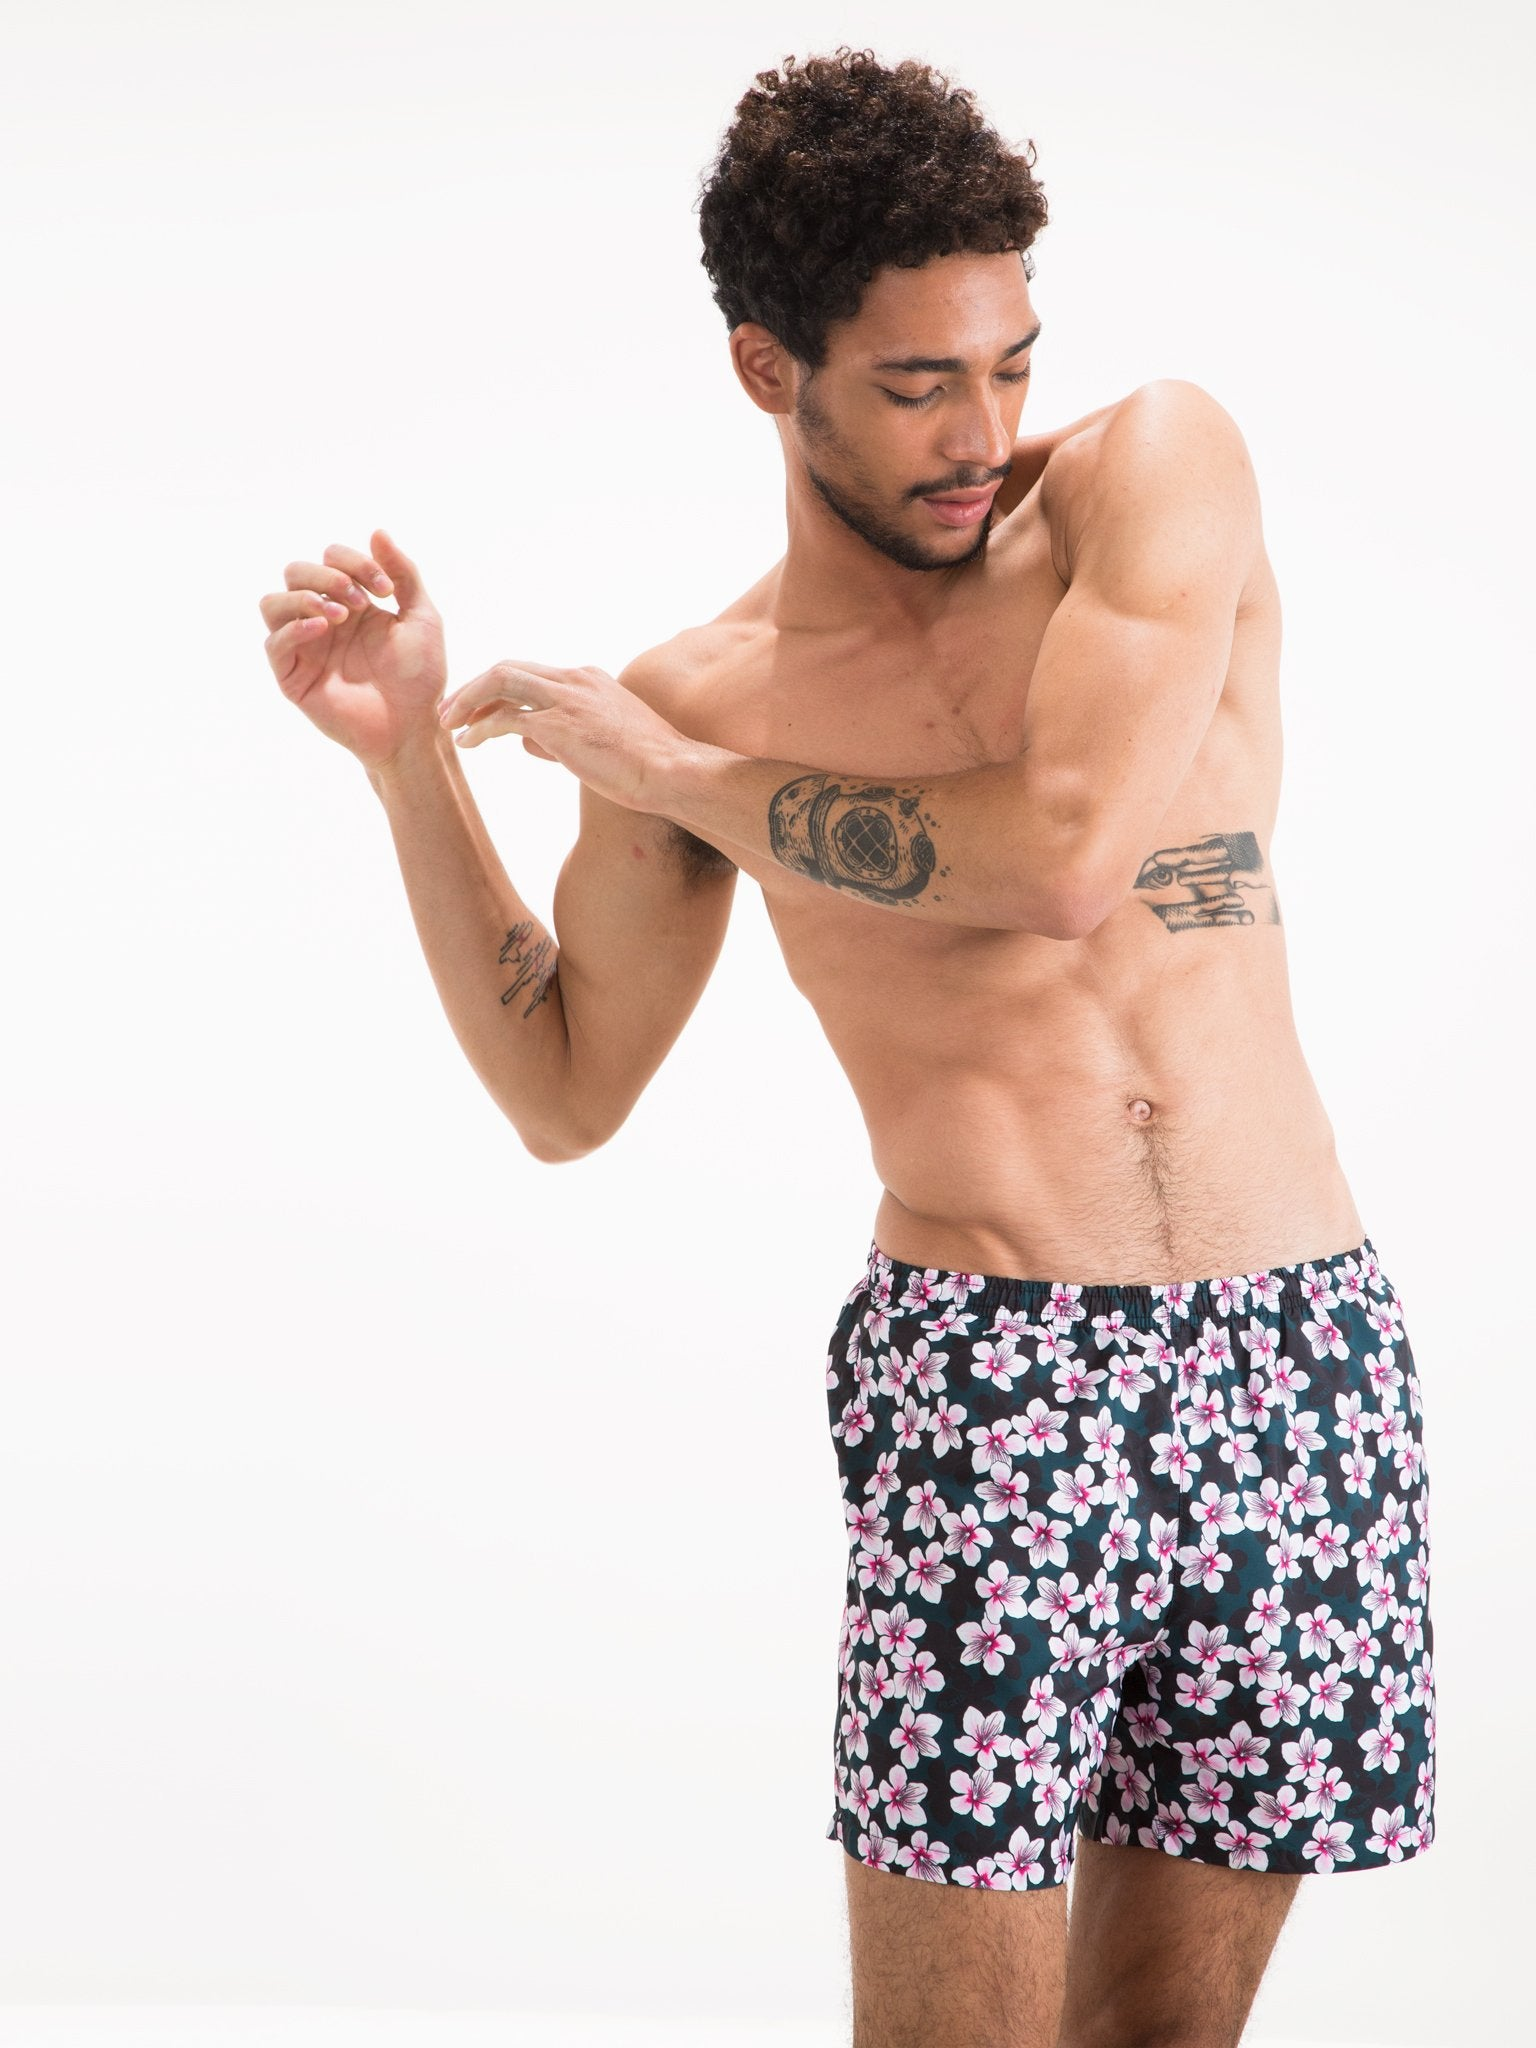 965a1bfdc9 The Polonio - Cherry Blossom Runner Swim Shorts